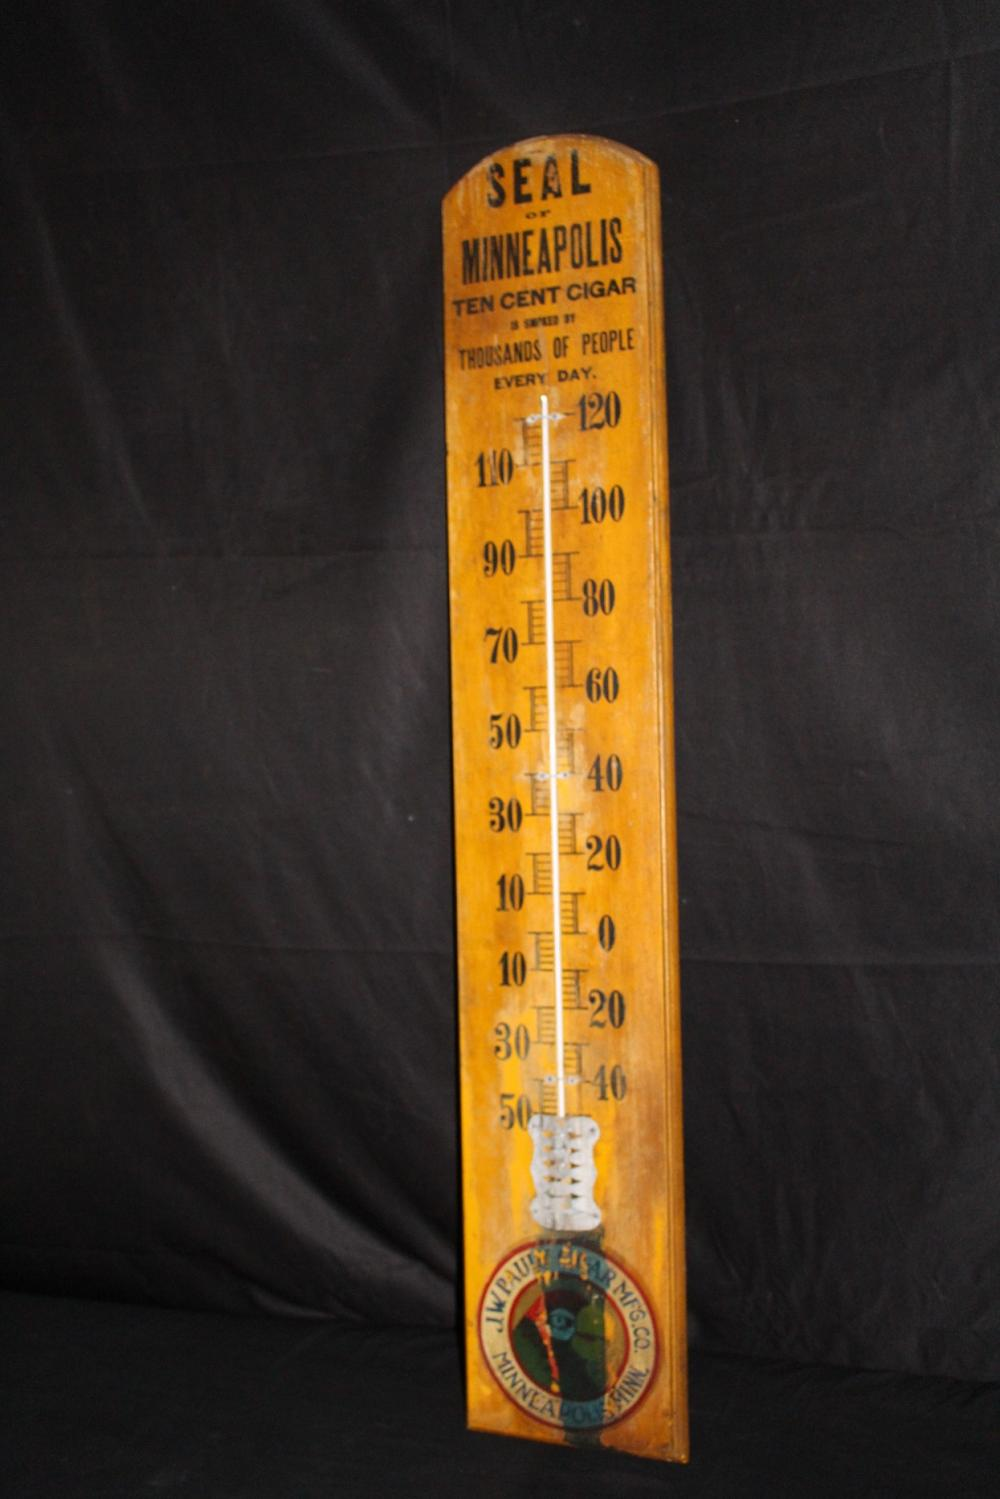 LARGE WOOD THERMOMETER SEAL MINNEAPOLIS CIGARS